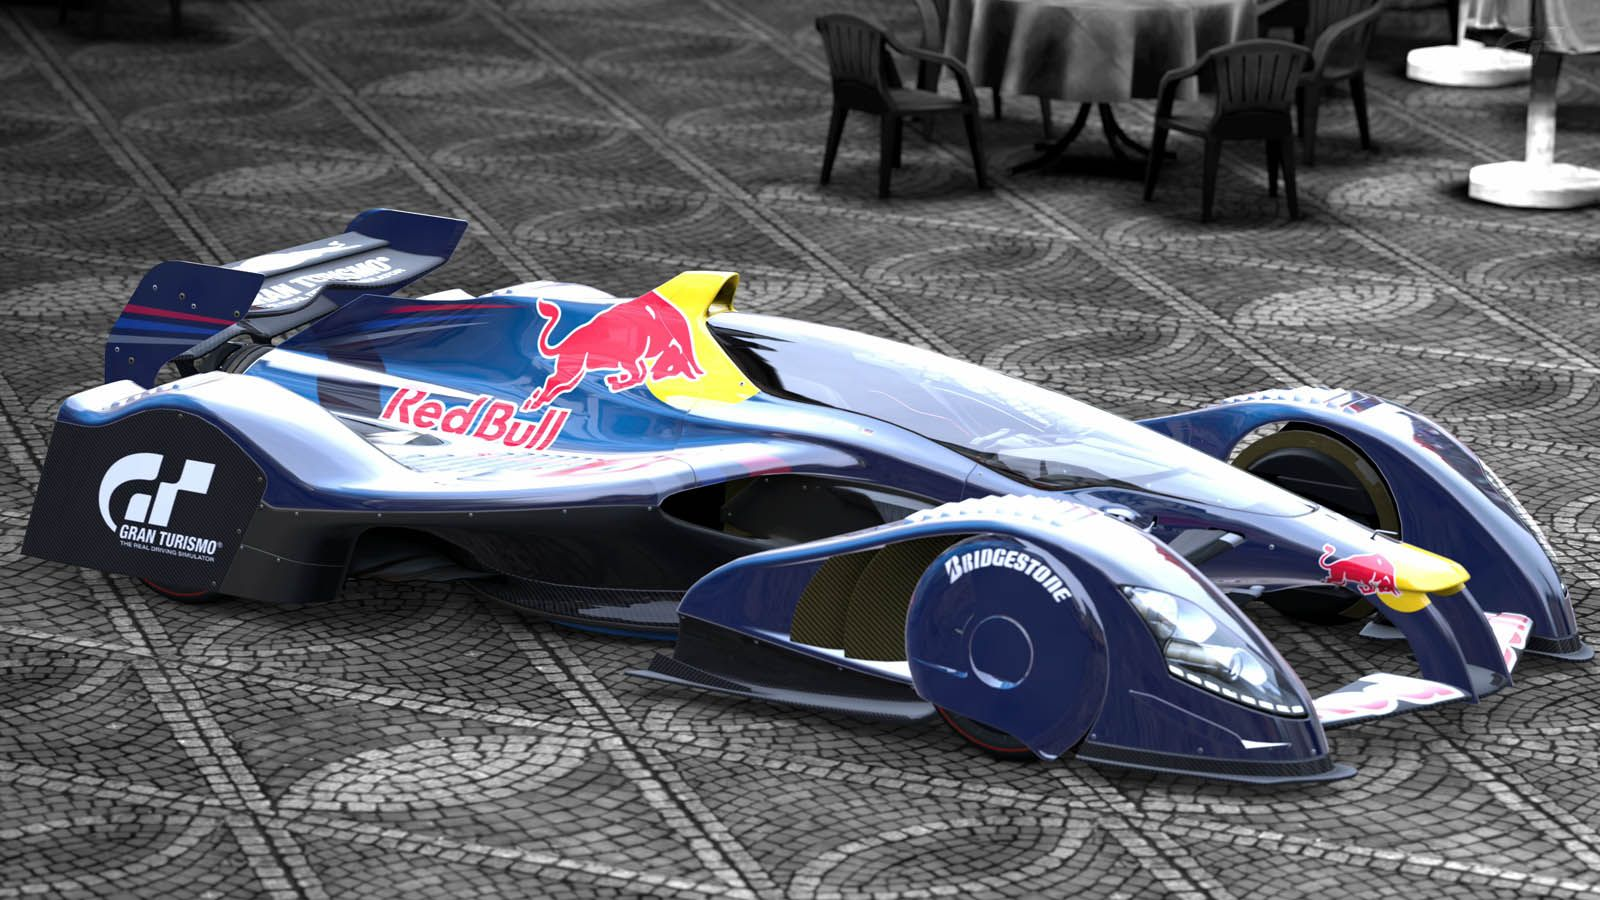 red bull x2010 - Photo #02 | Augmented Realty | Pinterest | Red bull ...